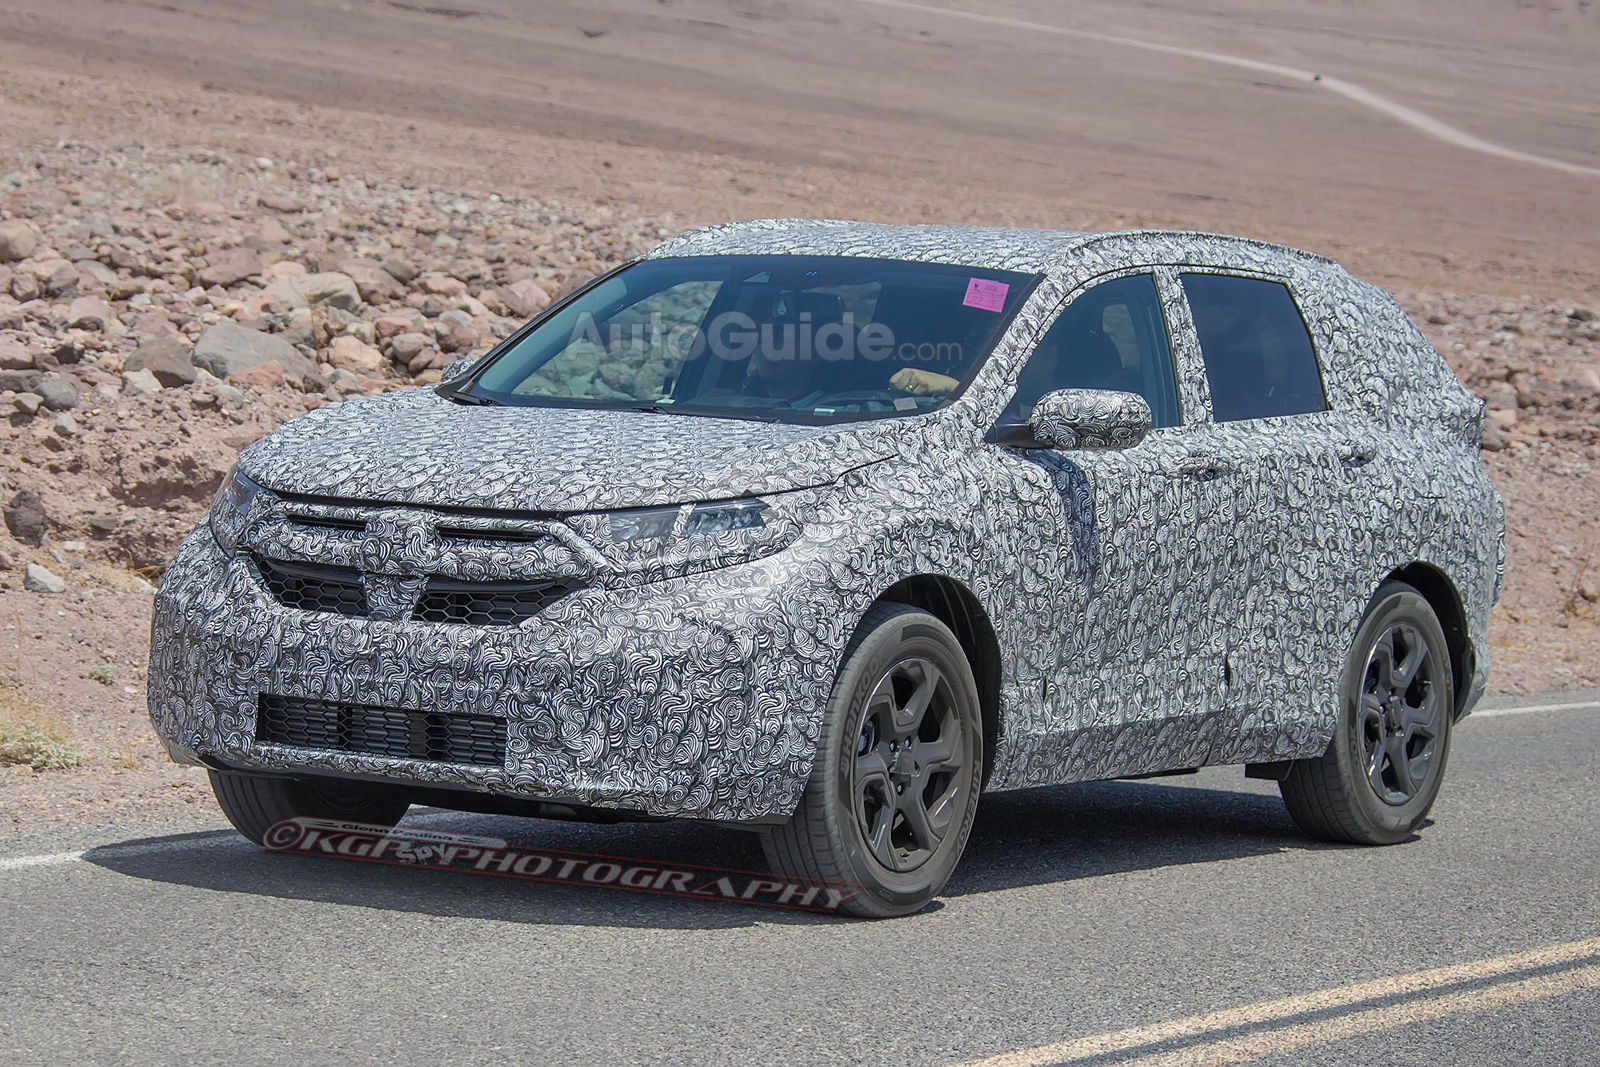 2018 Honda Cr V Spied For The First Time With Pilot Inspired Design